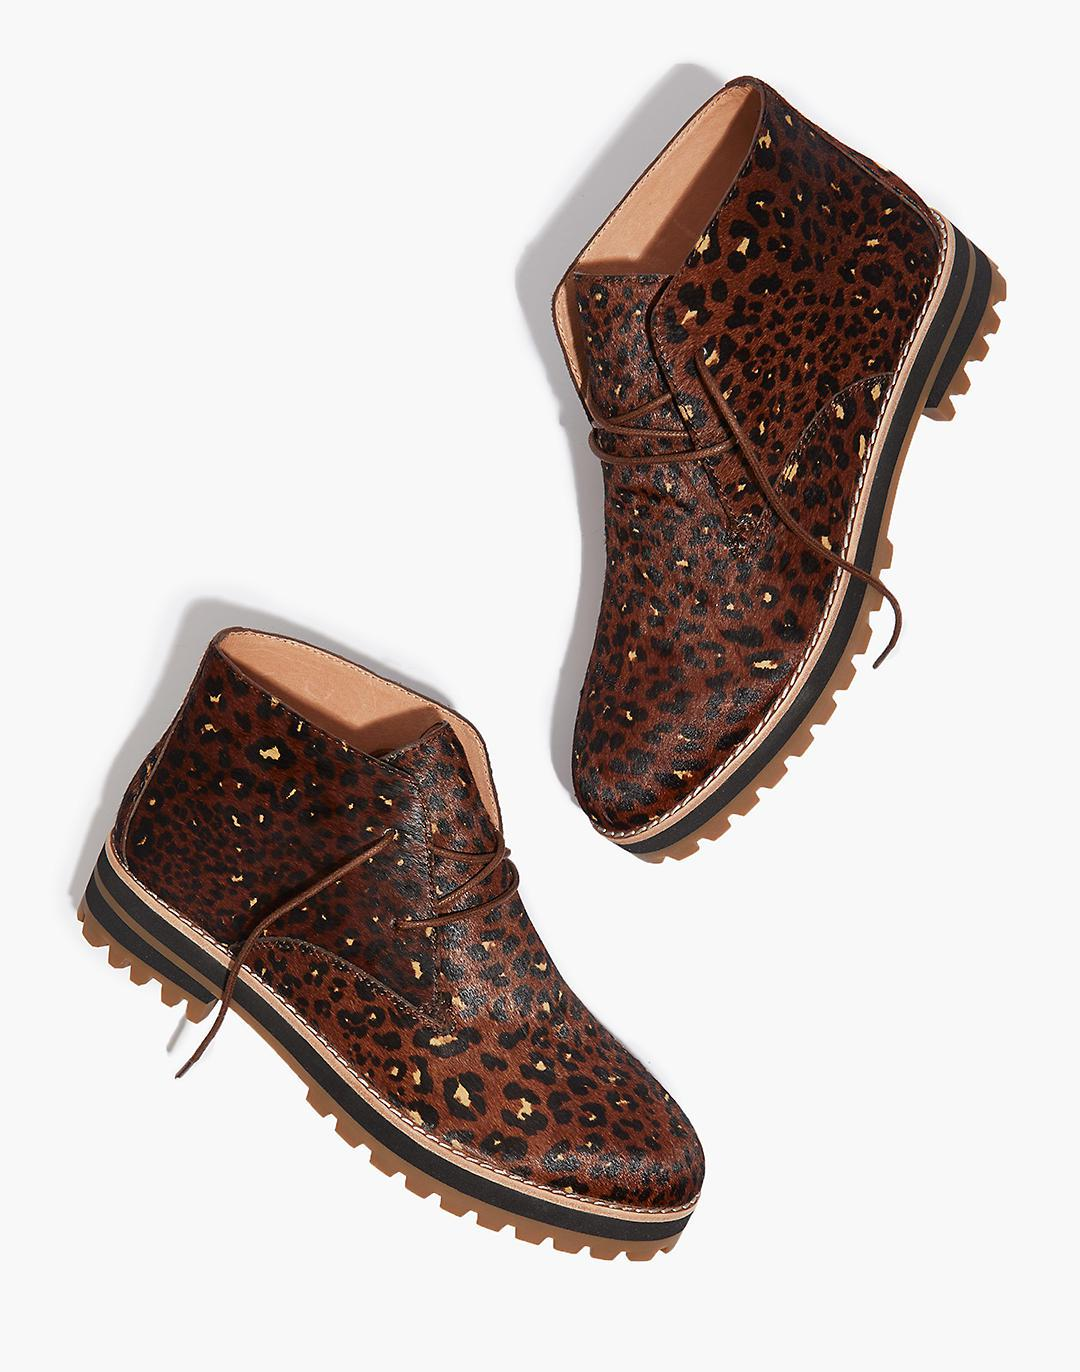 The Wren Boot in Painted Leopard Calf Hair